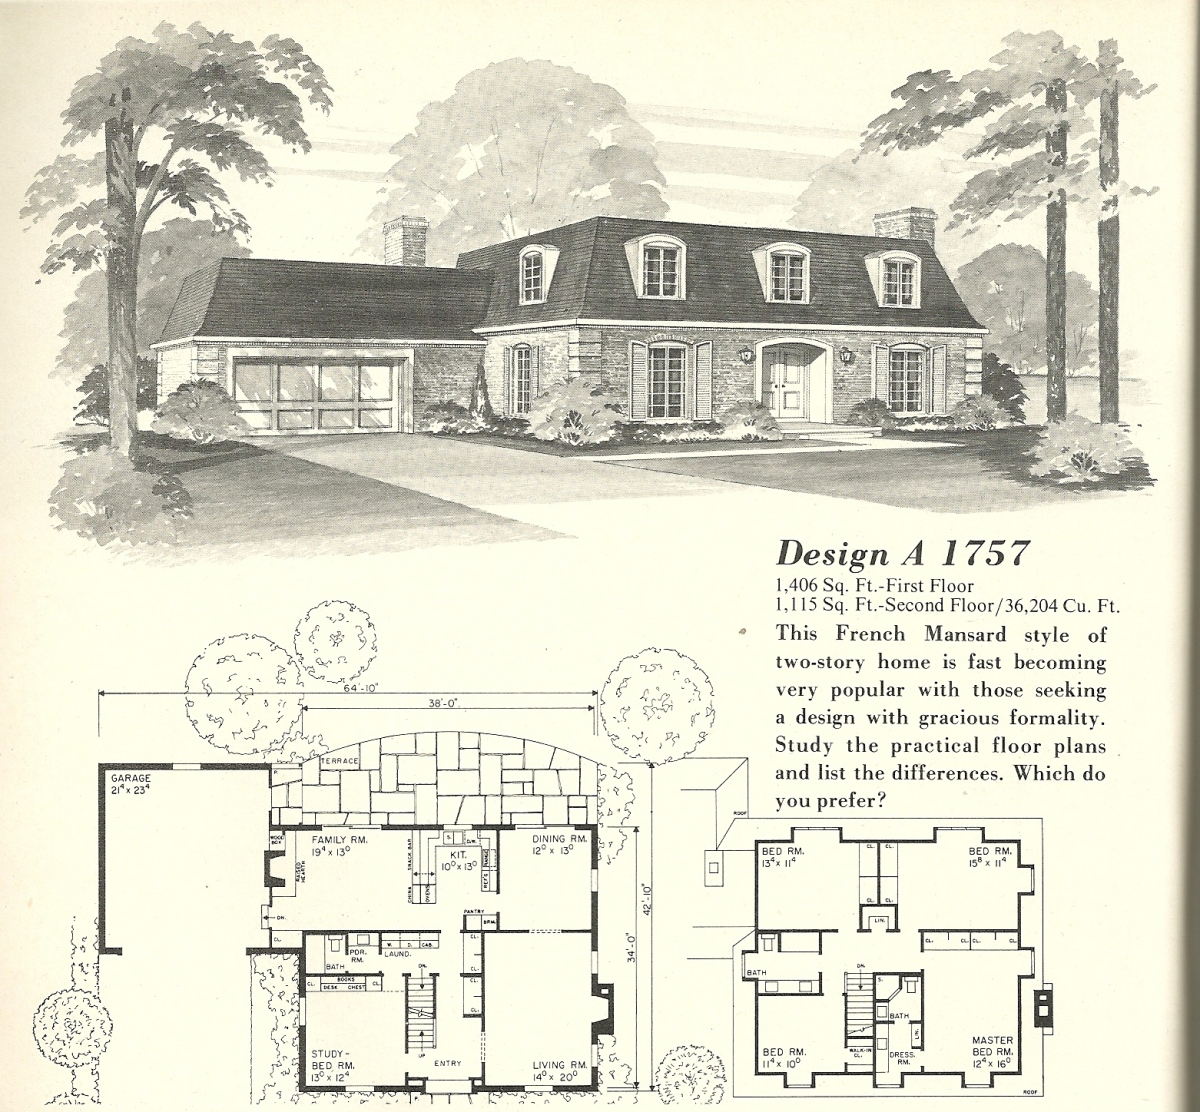 Vintage house plans french mansards 5 antique alter ego for Vintage floor plans